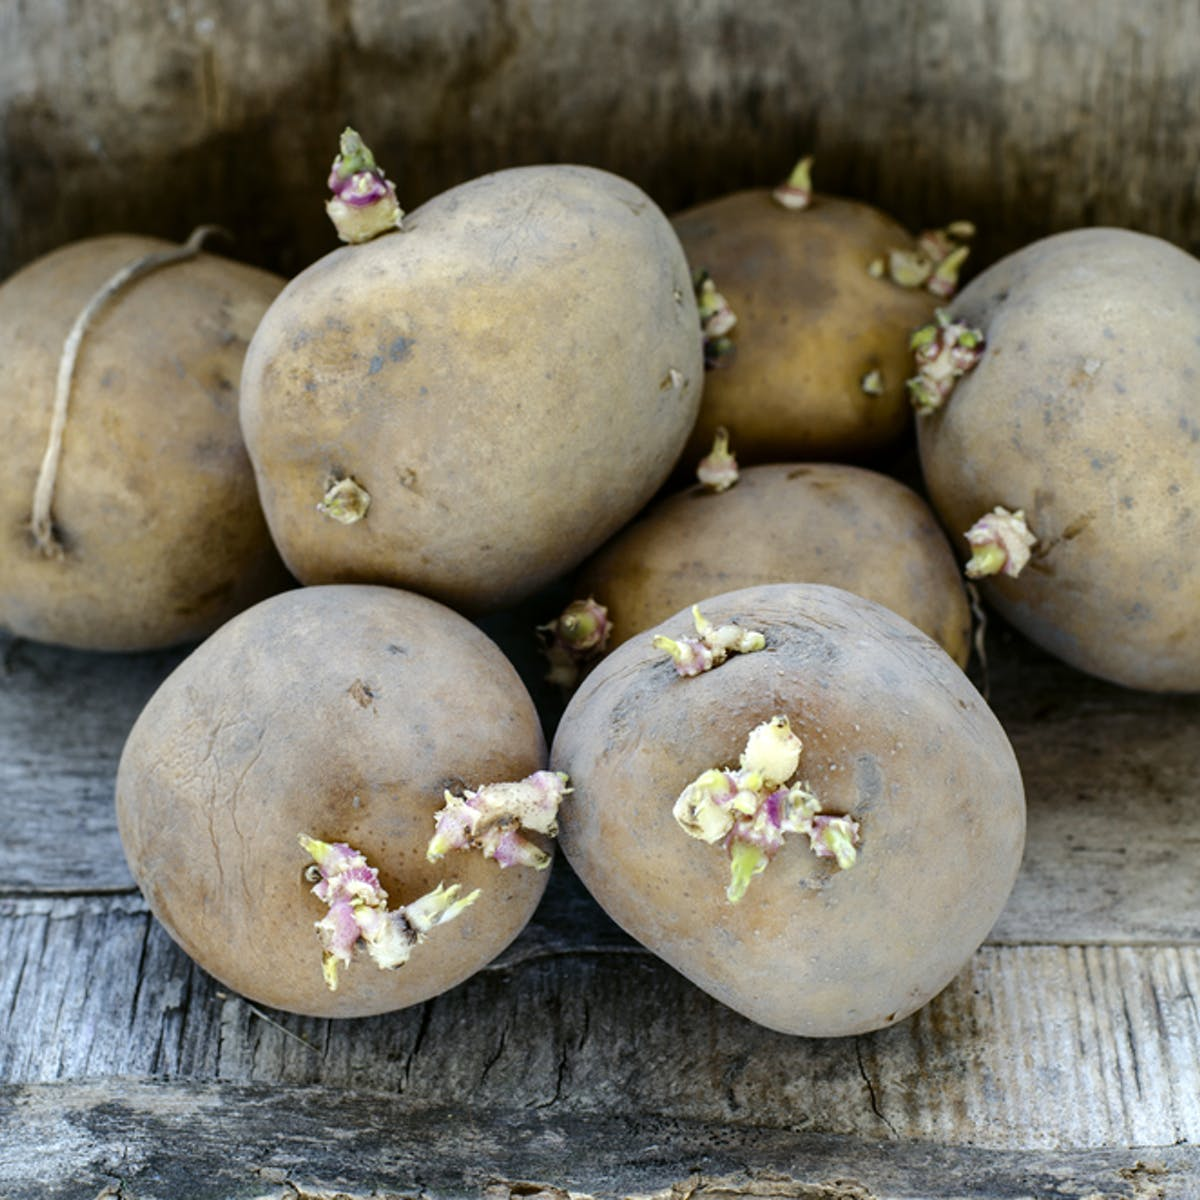 Can you really be poisoned by green or sprouting potatoes?